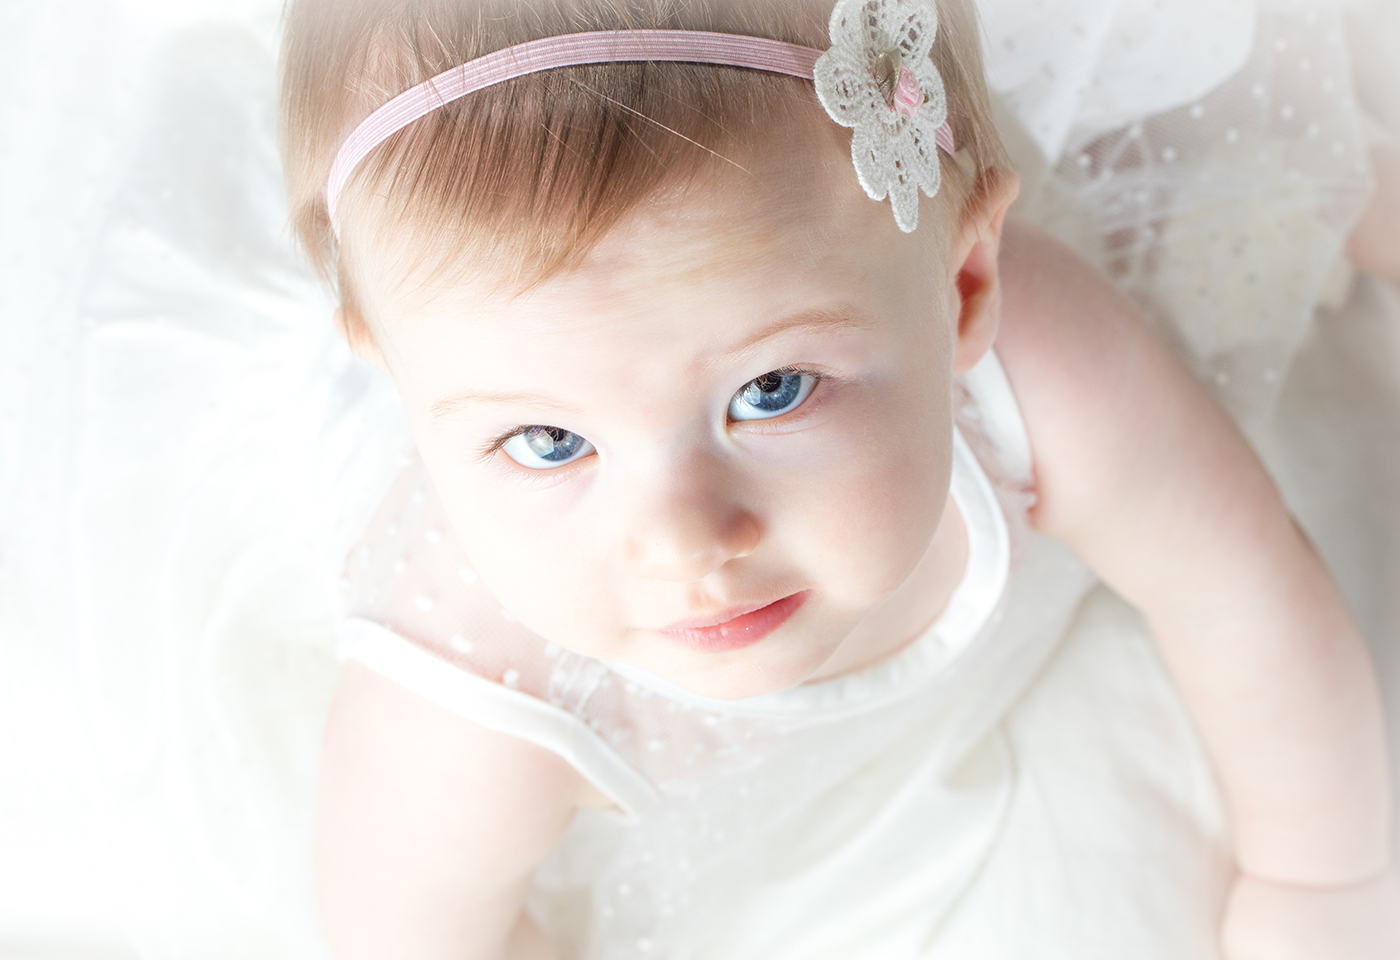 Birds eye view baby white dress image